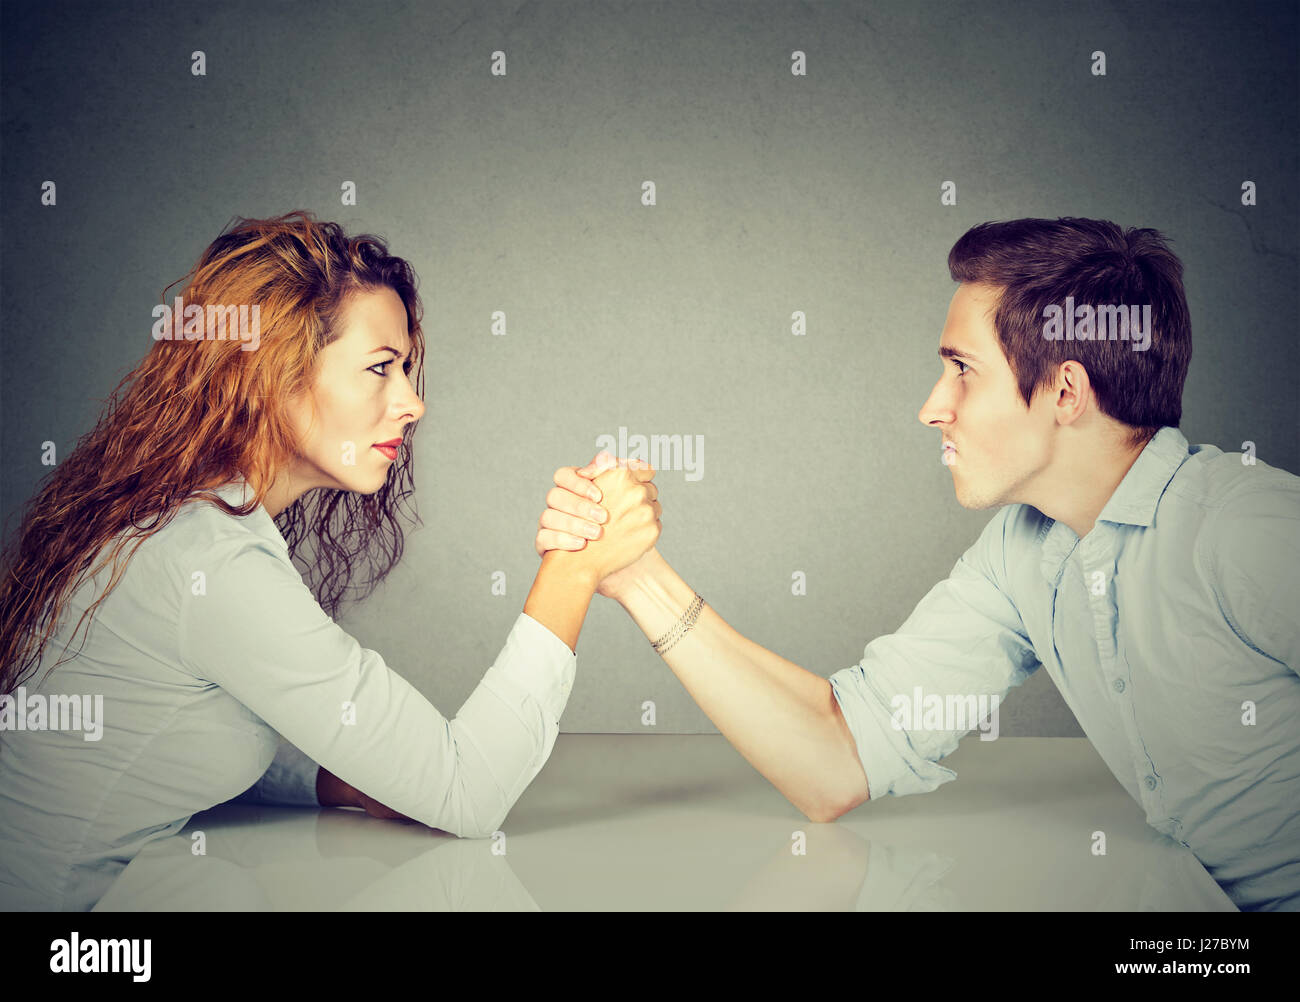 Business people woman and man arm wrestling - Stock Image